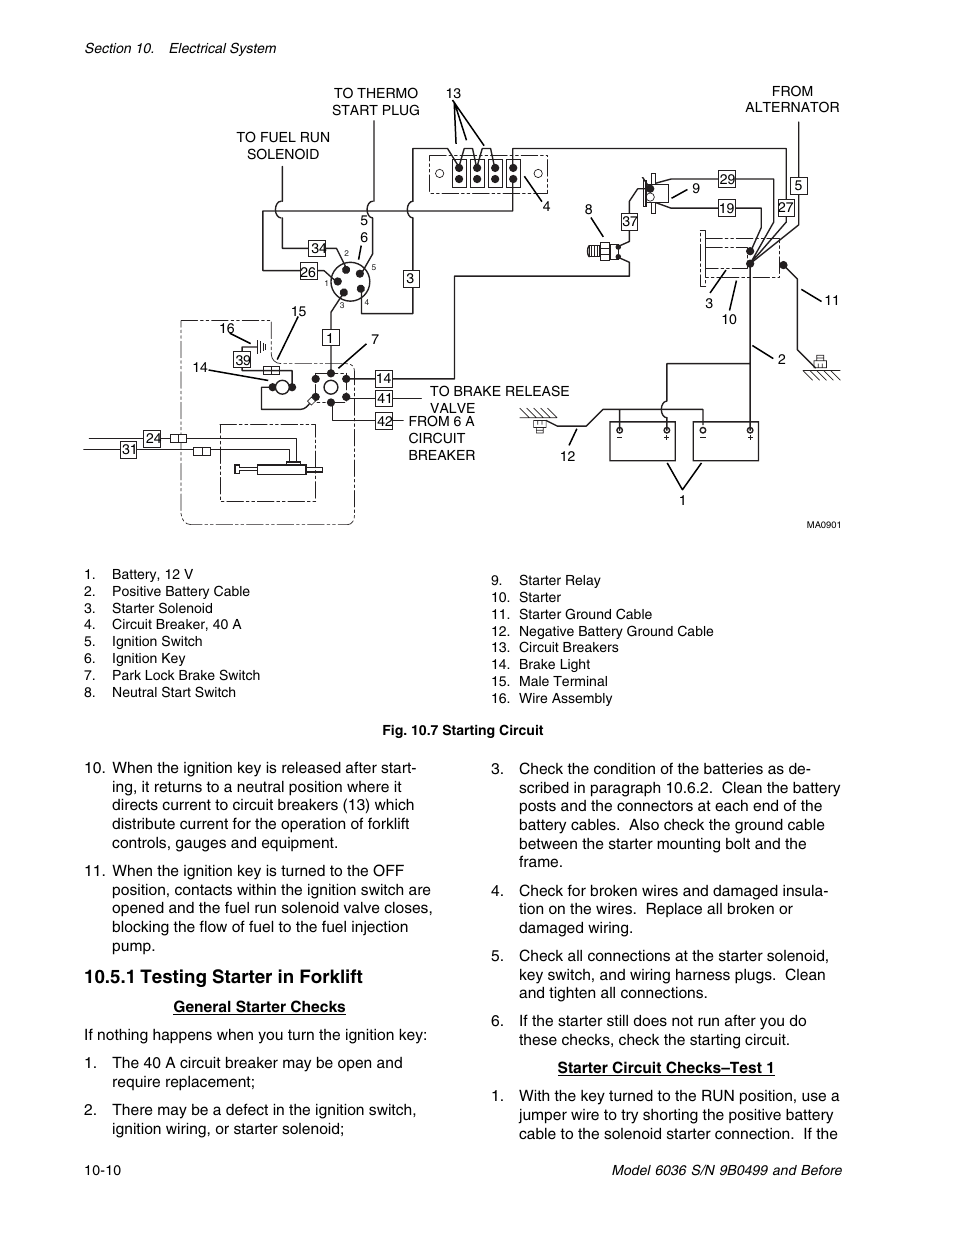 hight resolution of 1 testing starter in forklift skytrak 6036 service manual user manual page 204 280